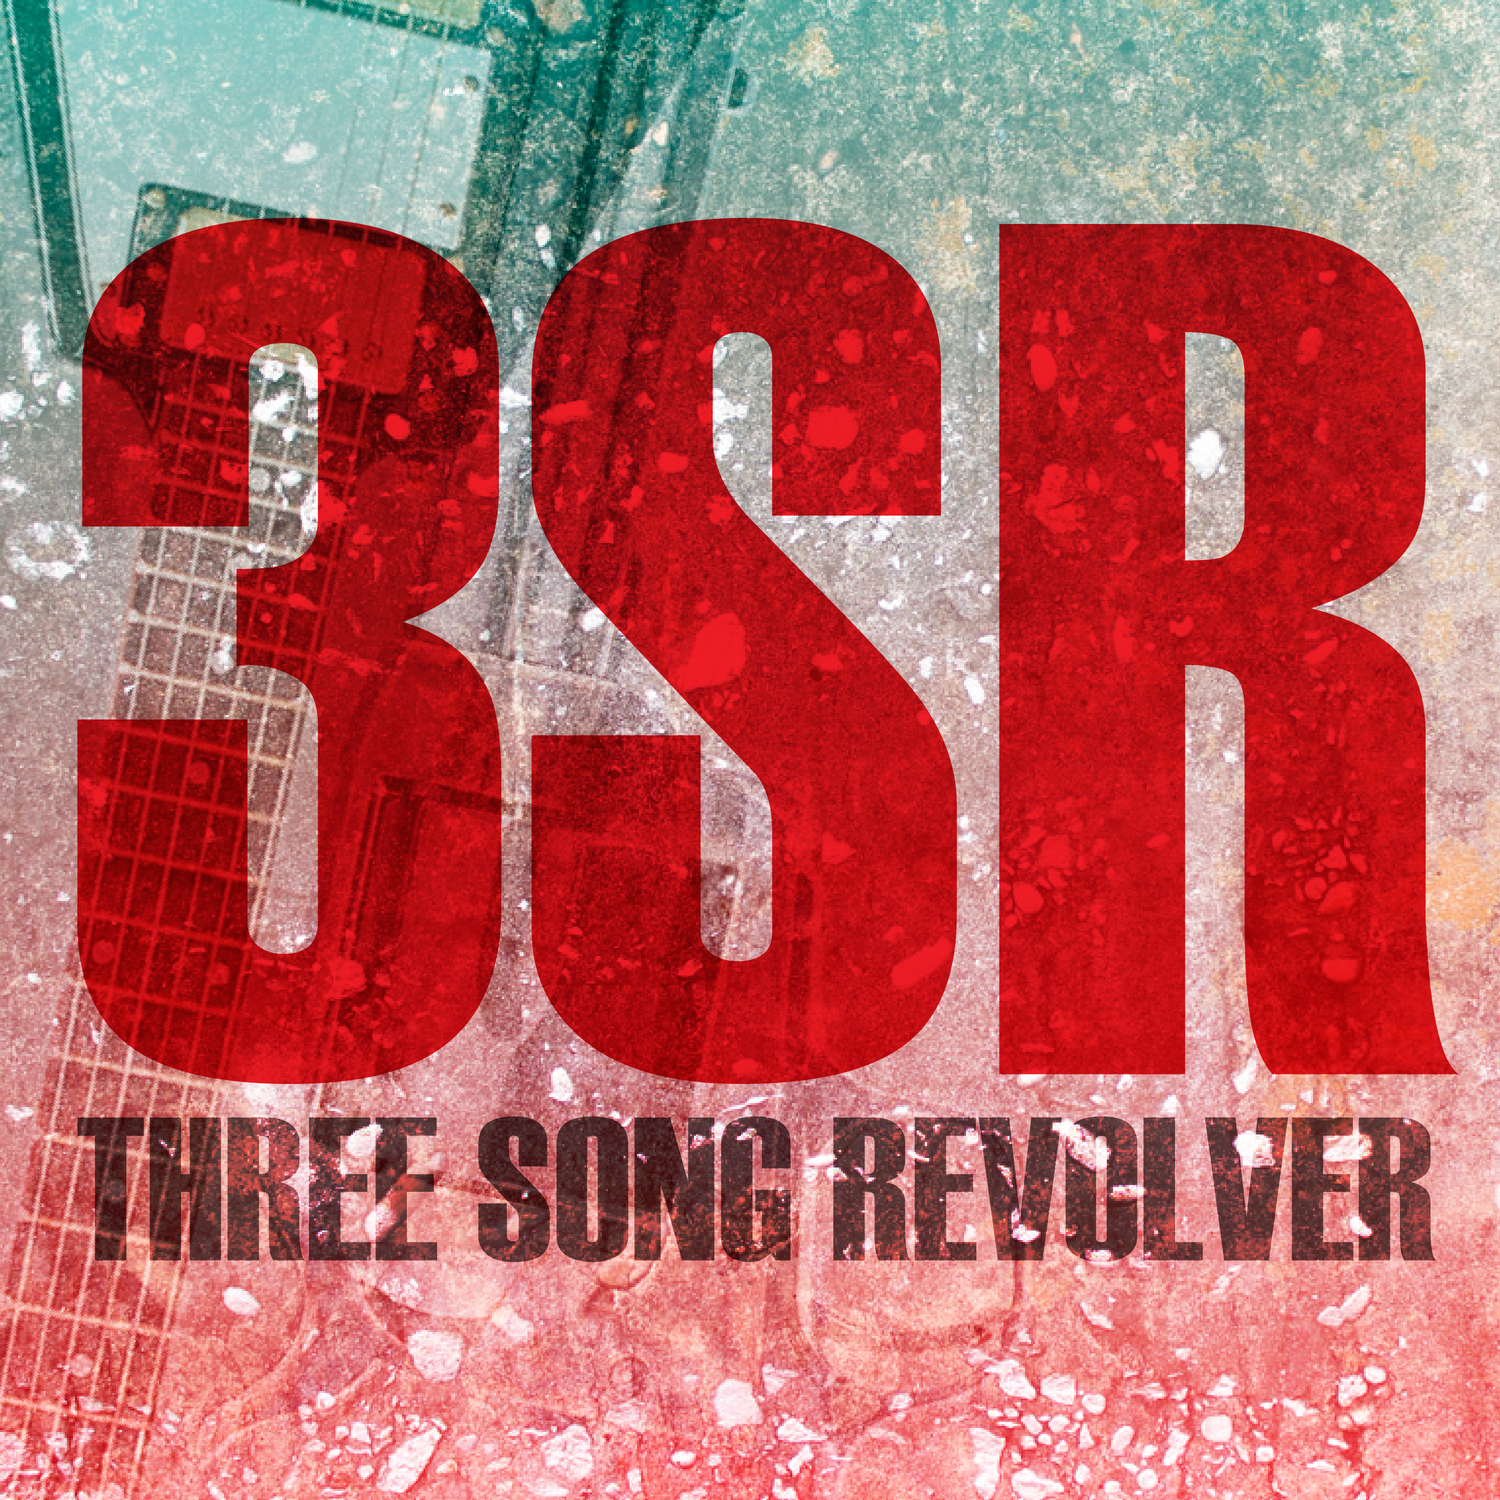 Three Song Revolver